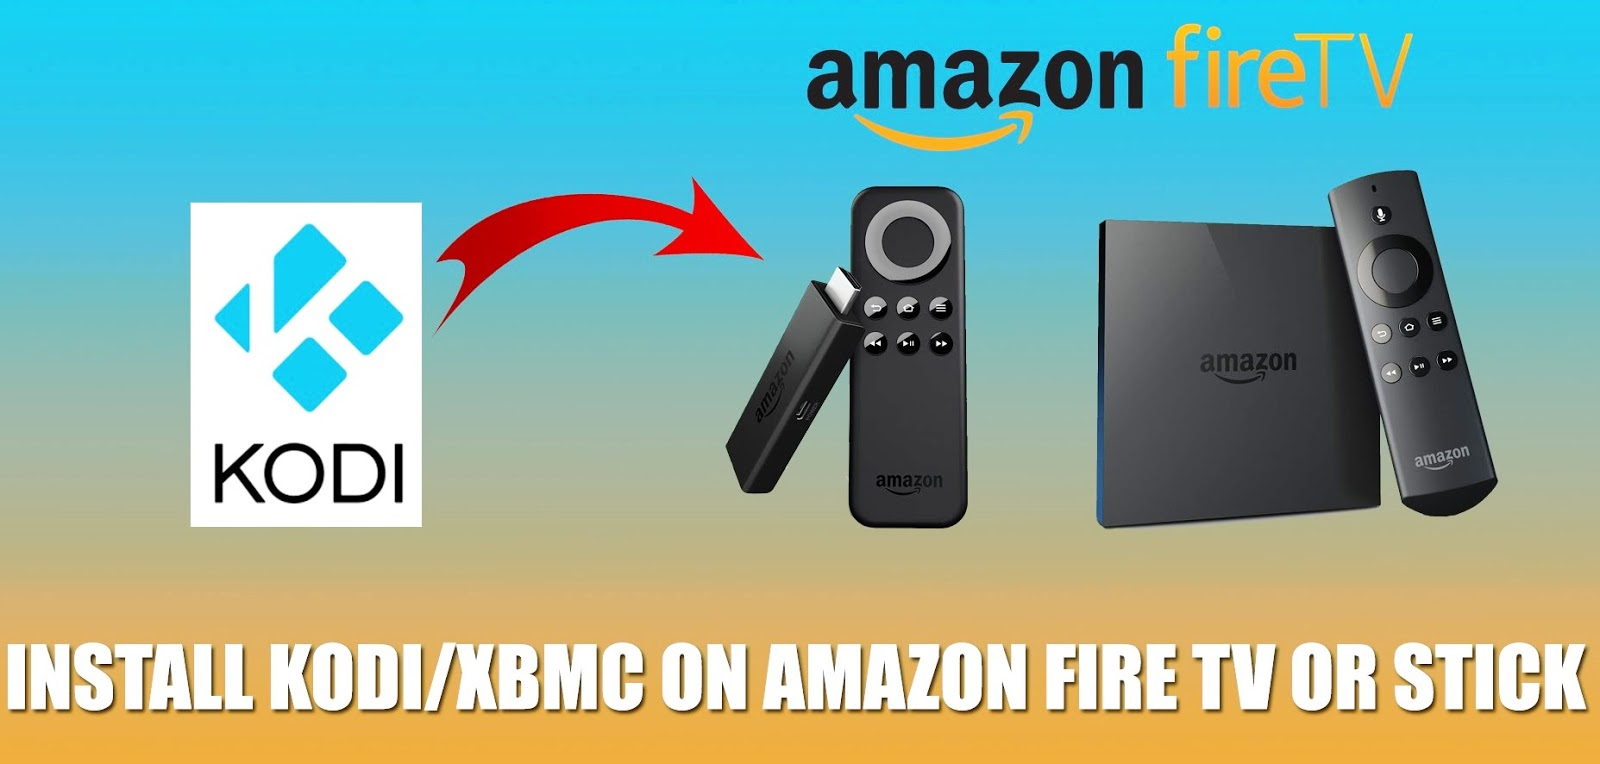 How to install kodi on a fire stick how to install kodi on firetv stick how to connect amazon fire stick